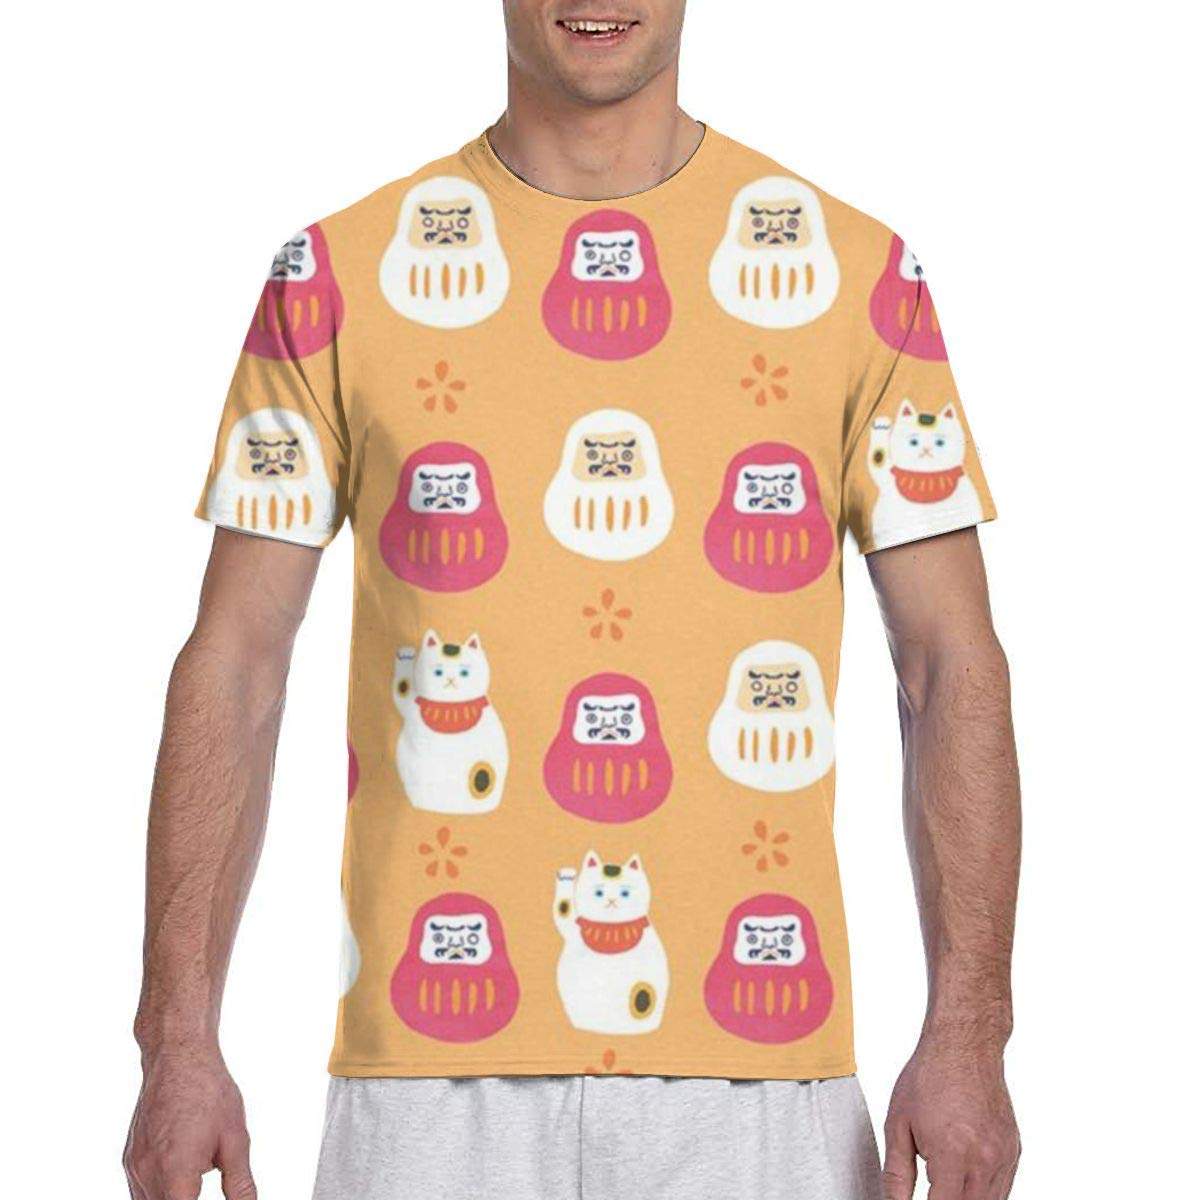 Mens T-Shirts Crew Neck Short Sleeve Japanese Dharma Lucky Cat Pattern Funny Graphics Top Tees